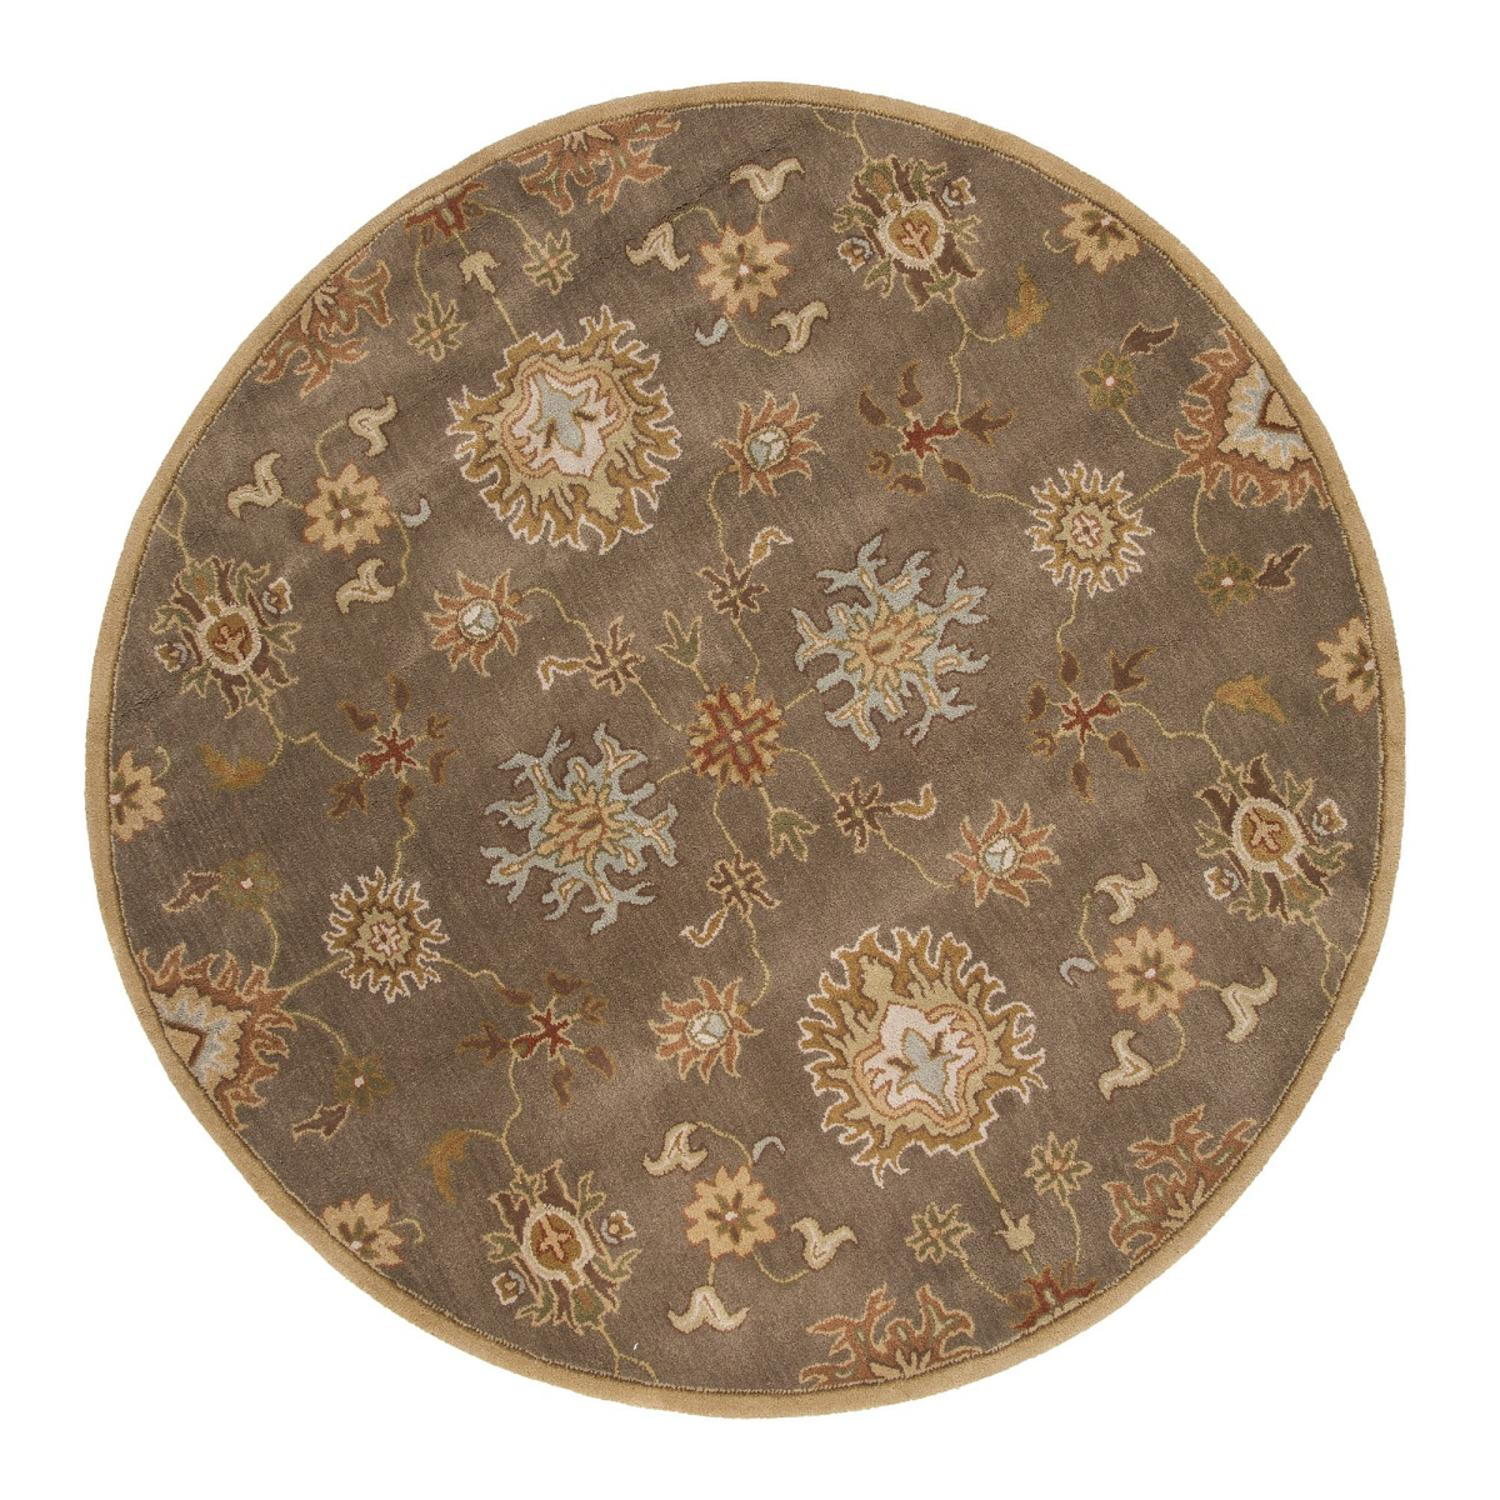 8' Burnt Sienna and Sandalwood Brown Transitional Nantes Round Hand-Tufted Wool Area Throw Rug